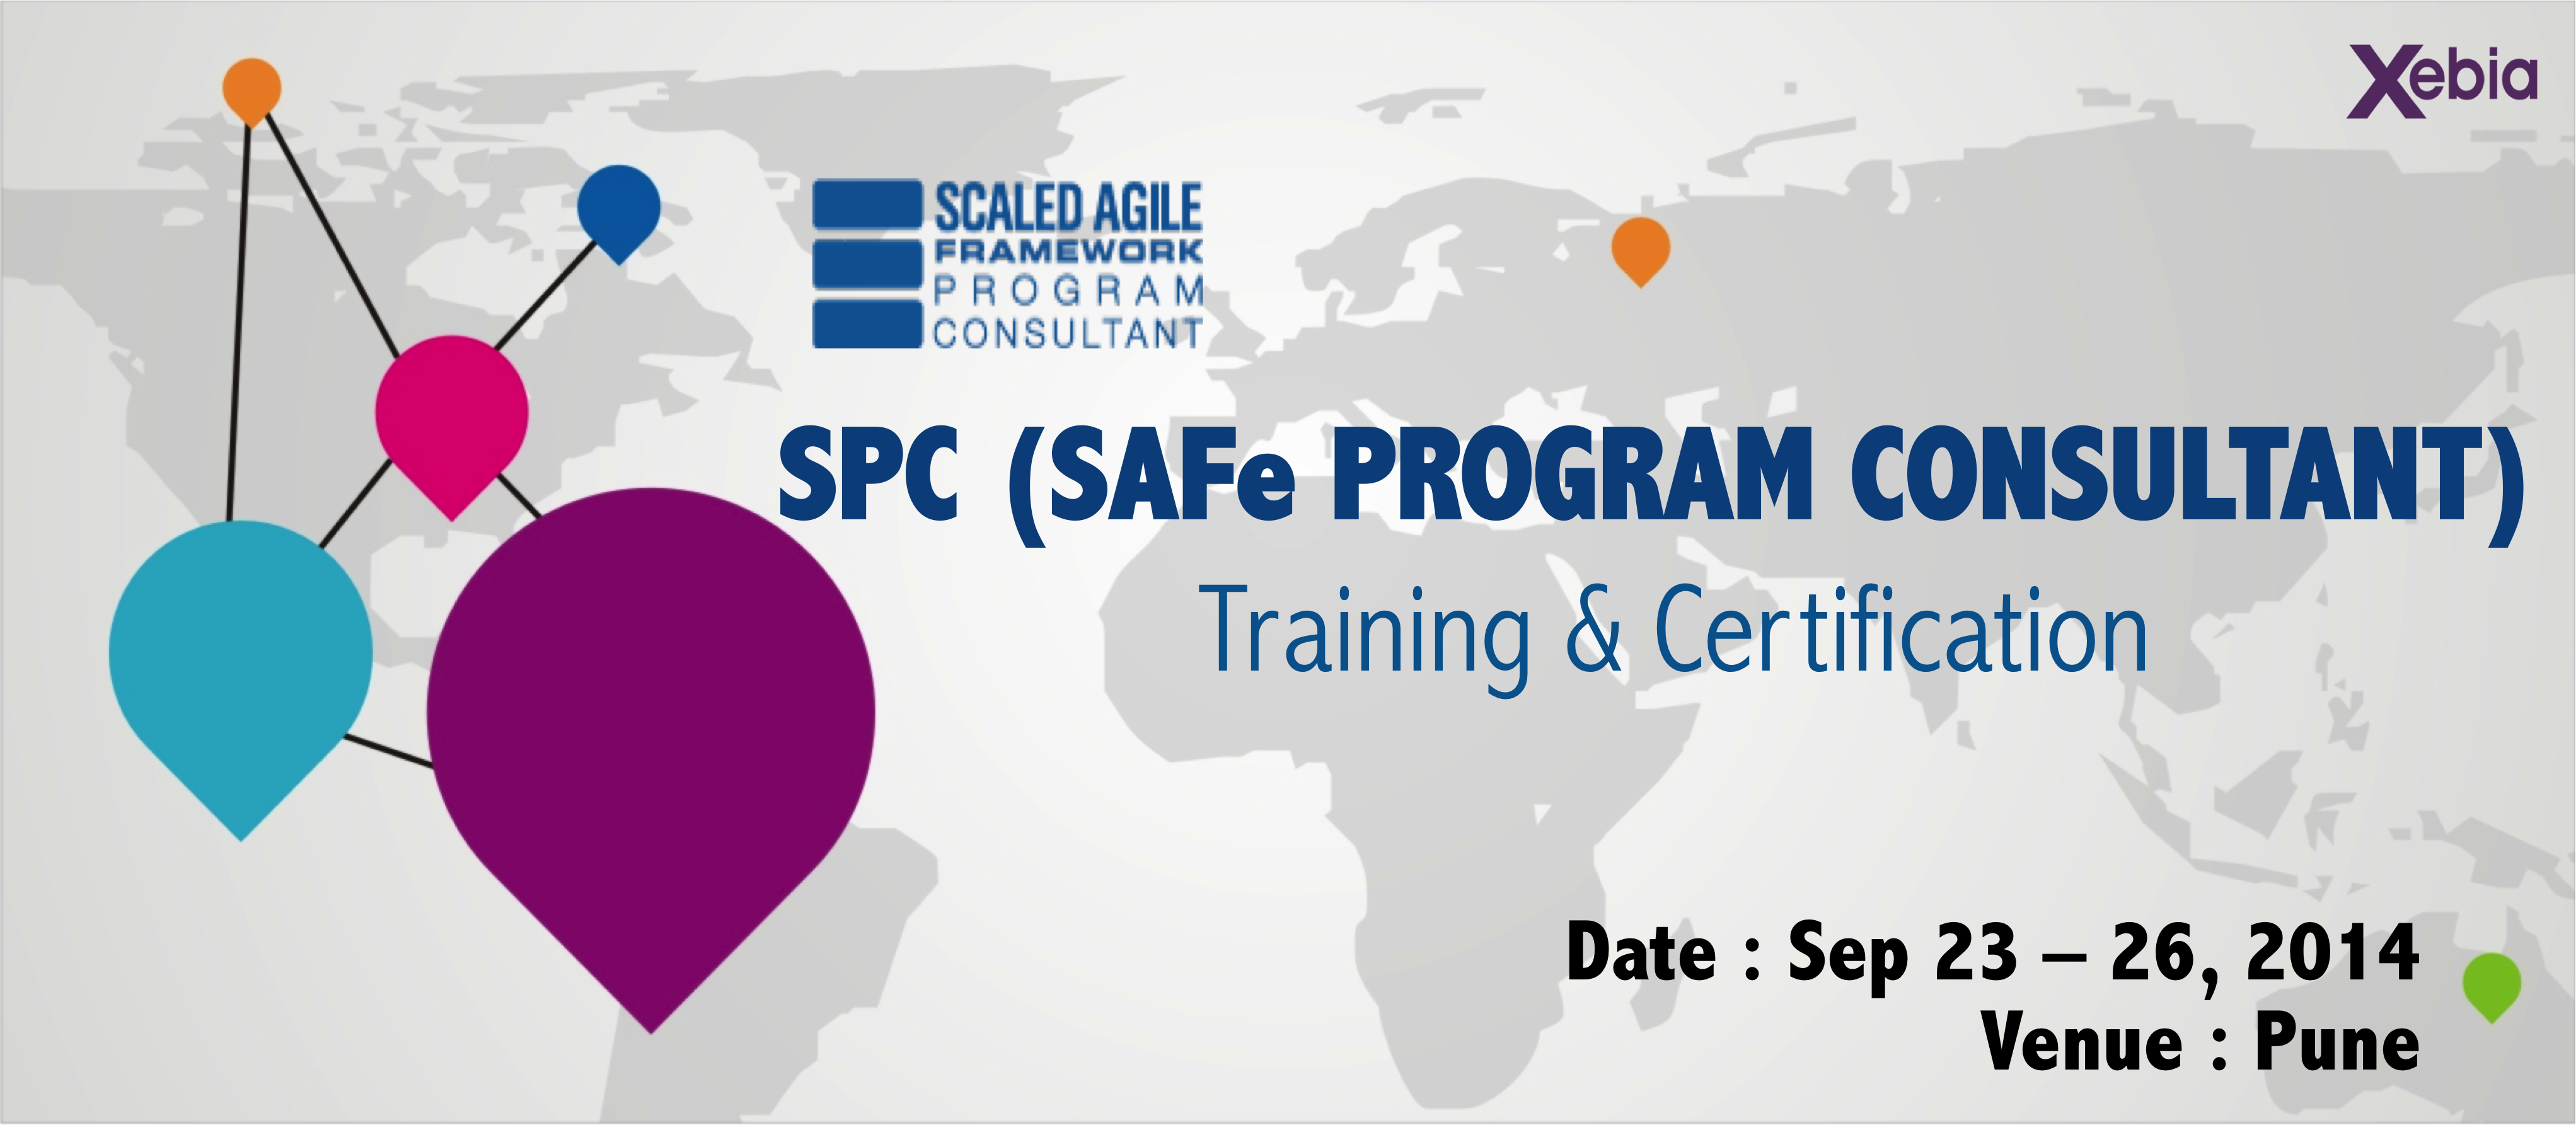 SPC (SAFe Program Consultant ) Training and Certification - Pune